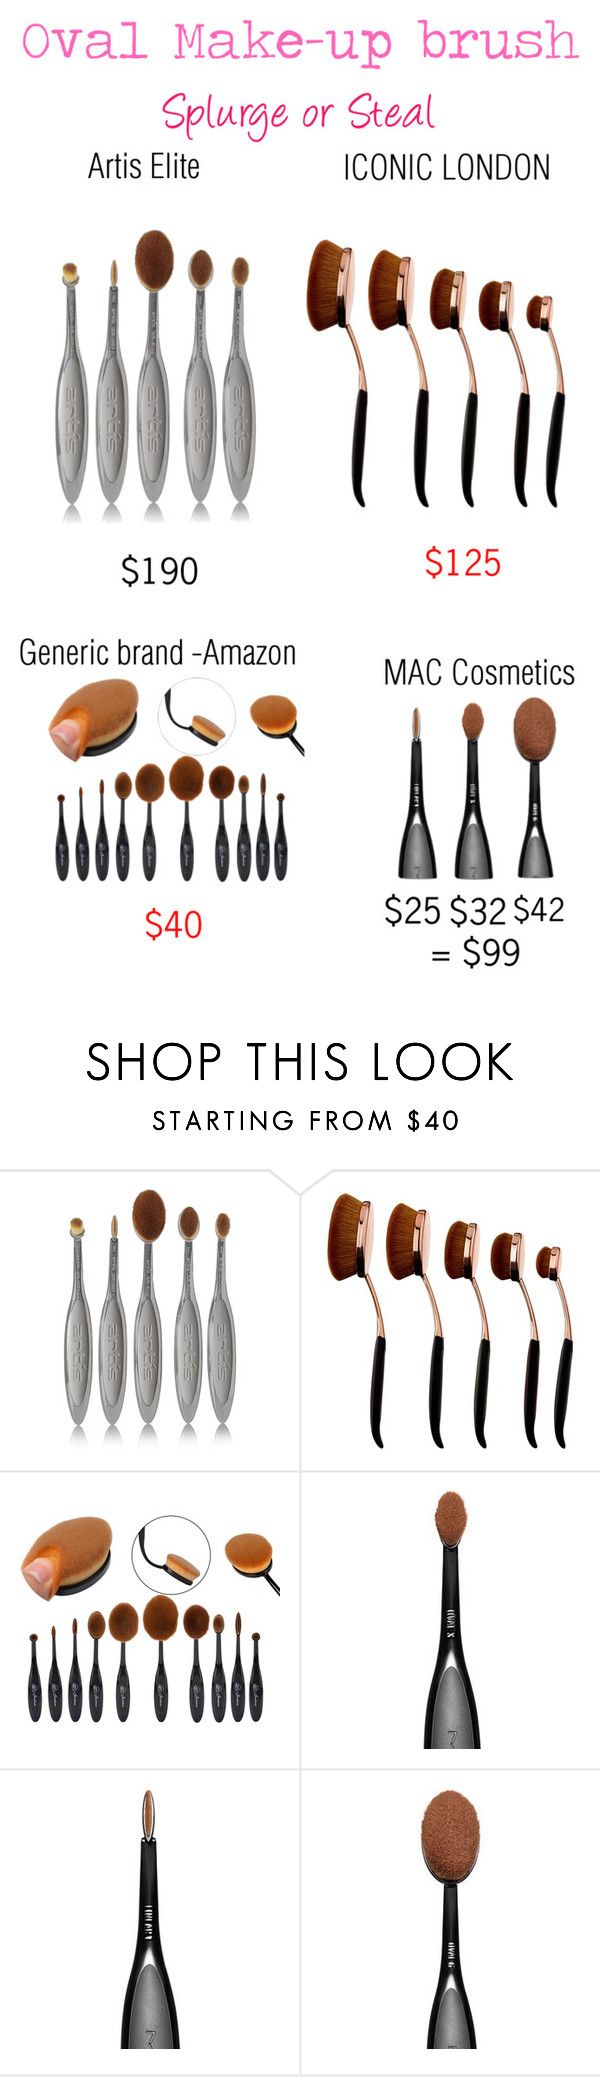 """""""Splurge or Steal: Oval face brushes"""" by krys-imvu ❤ liked on Polyvore featuring beauty, Artis and MAC Cosmetics"""